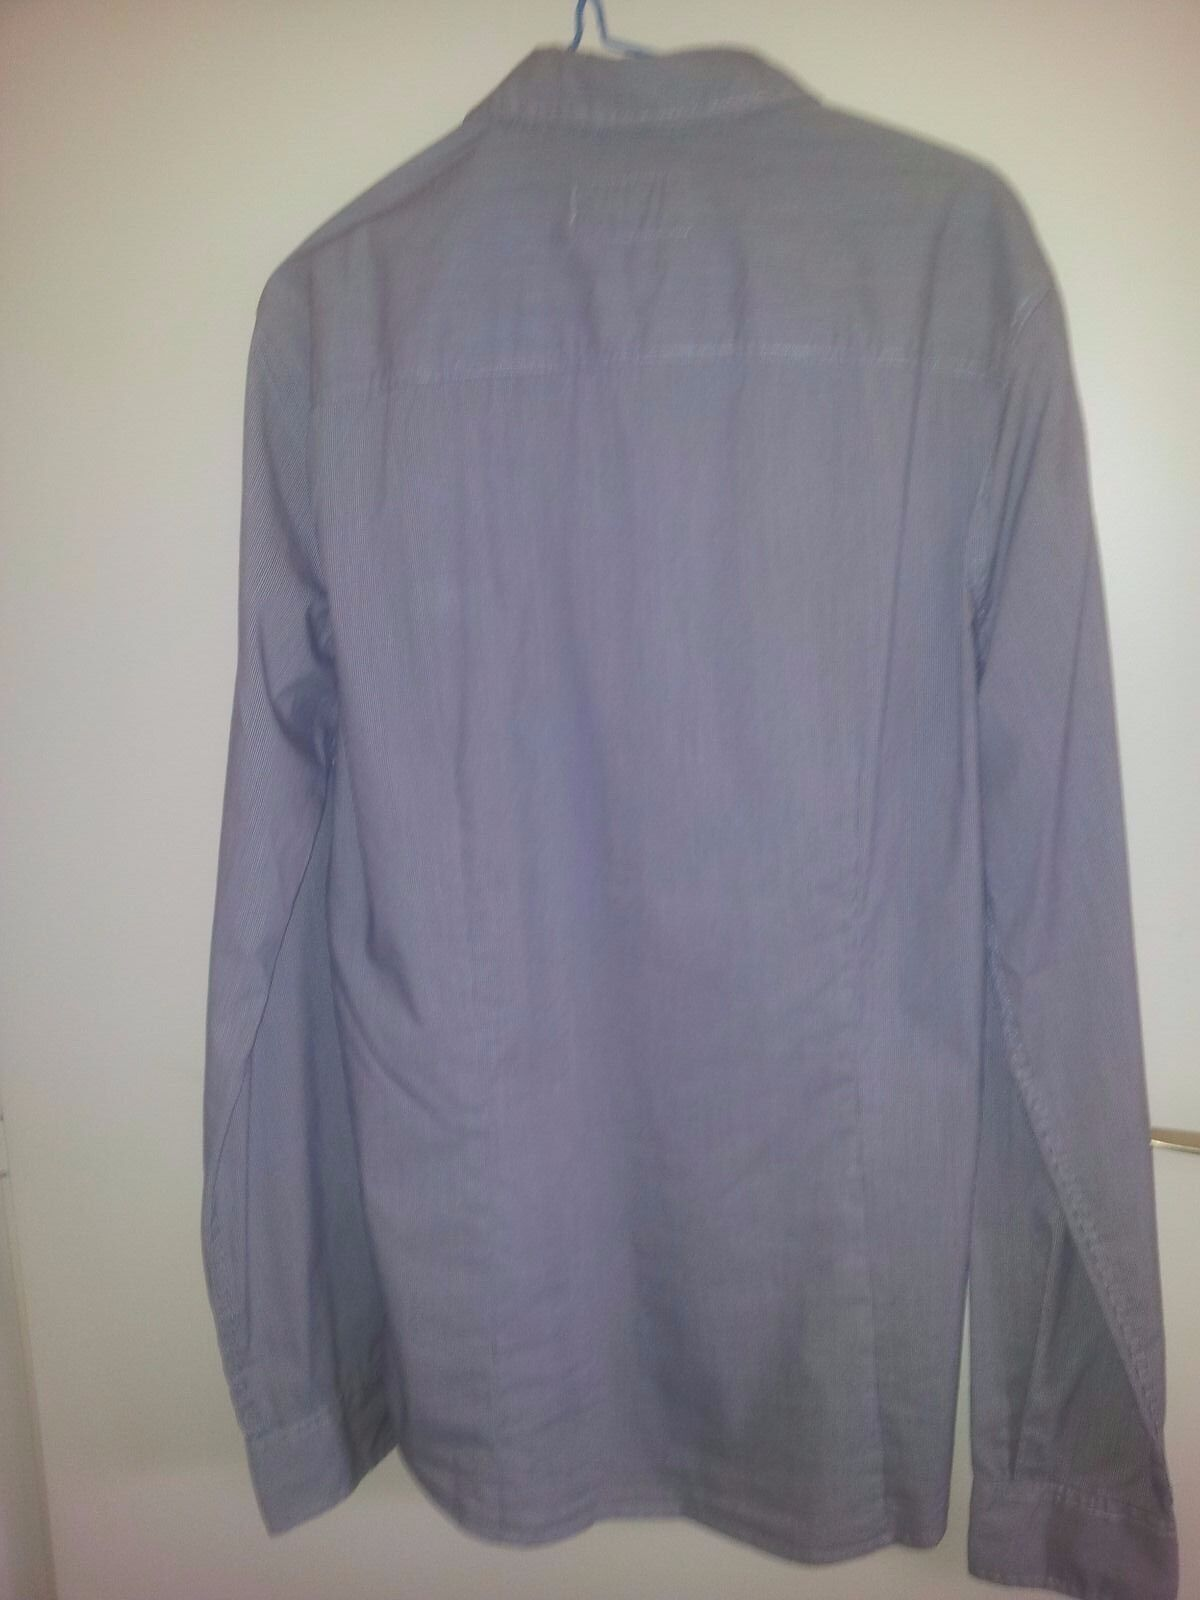 Chemise Guess Homme Guess Chemise Fines Rayures Taille S Comme